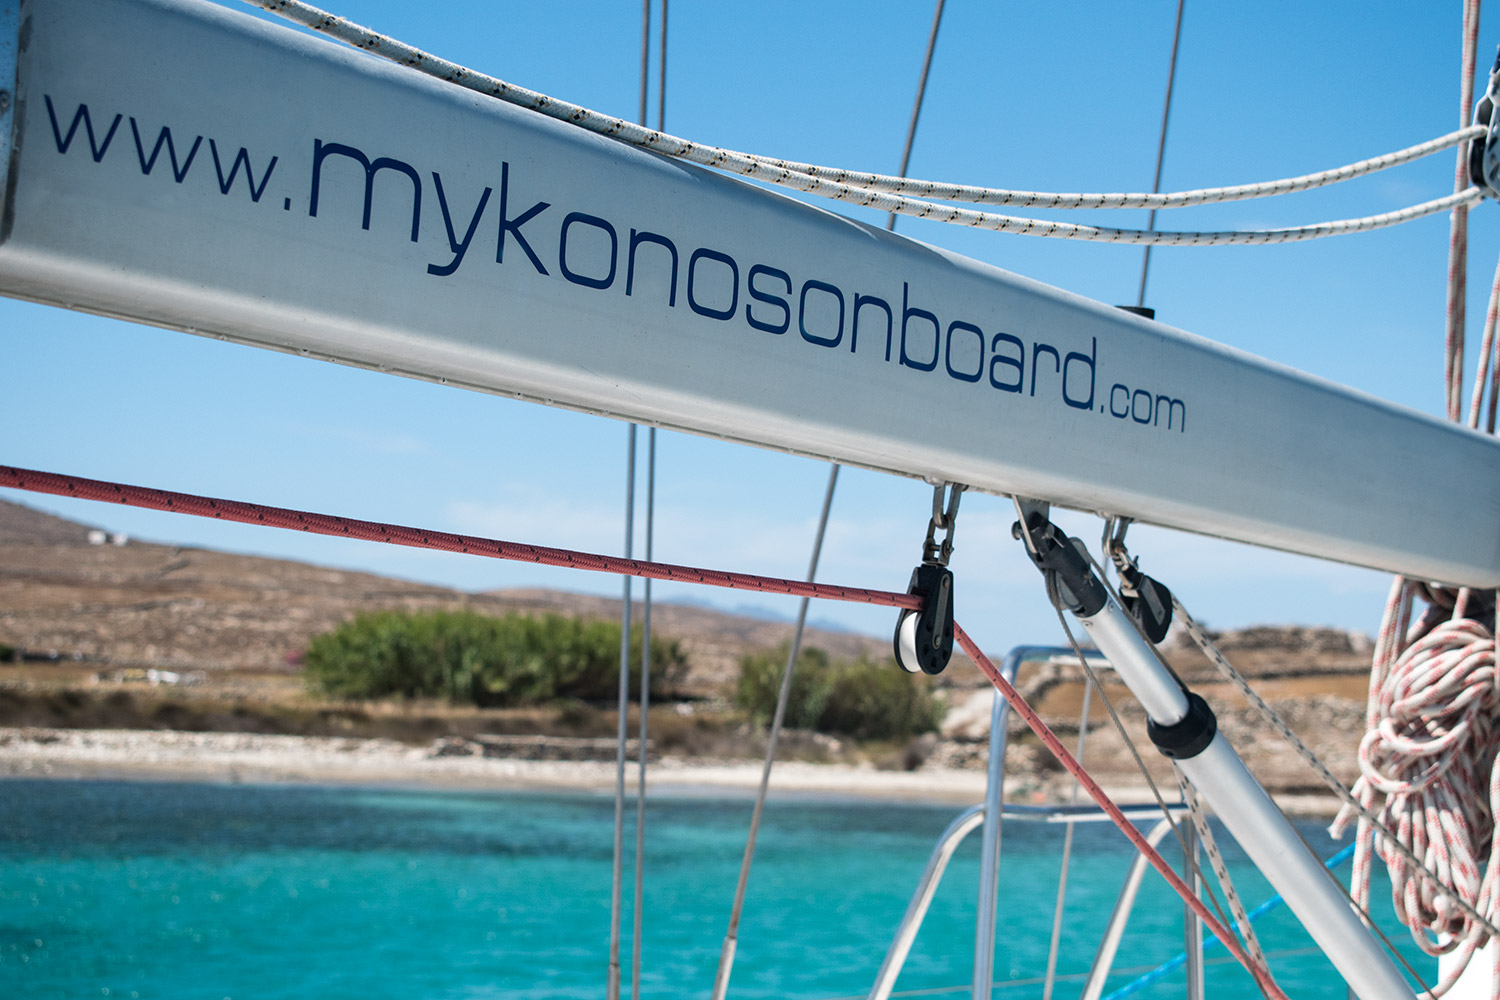 Mykonos on Board